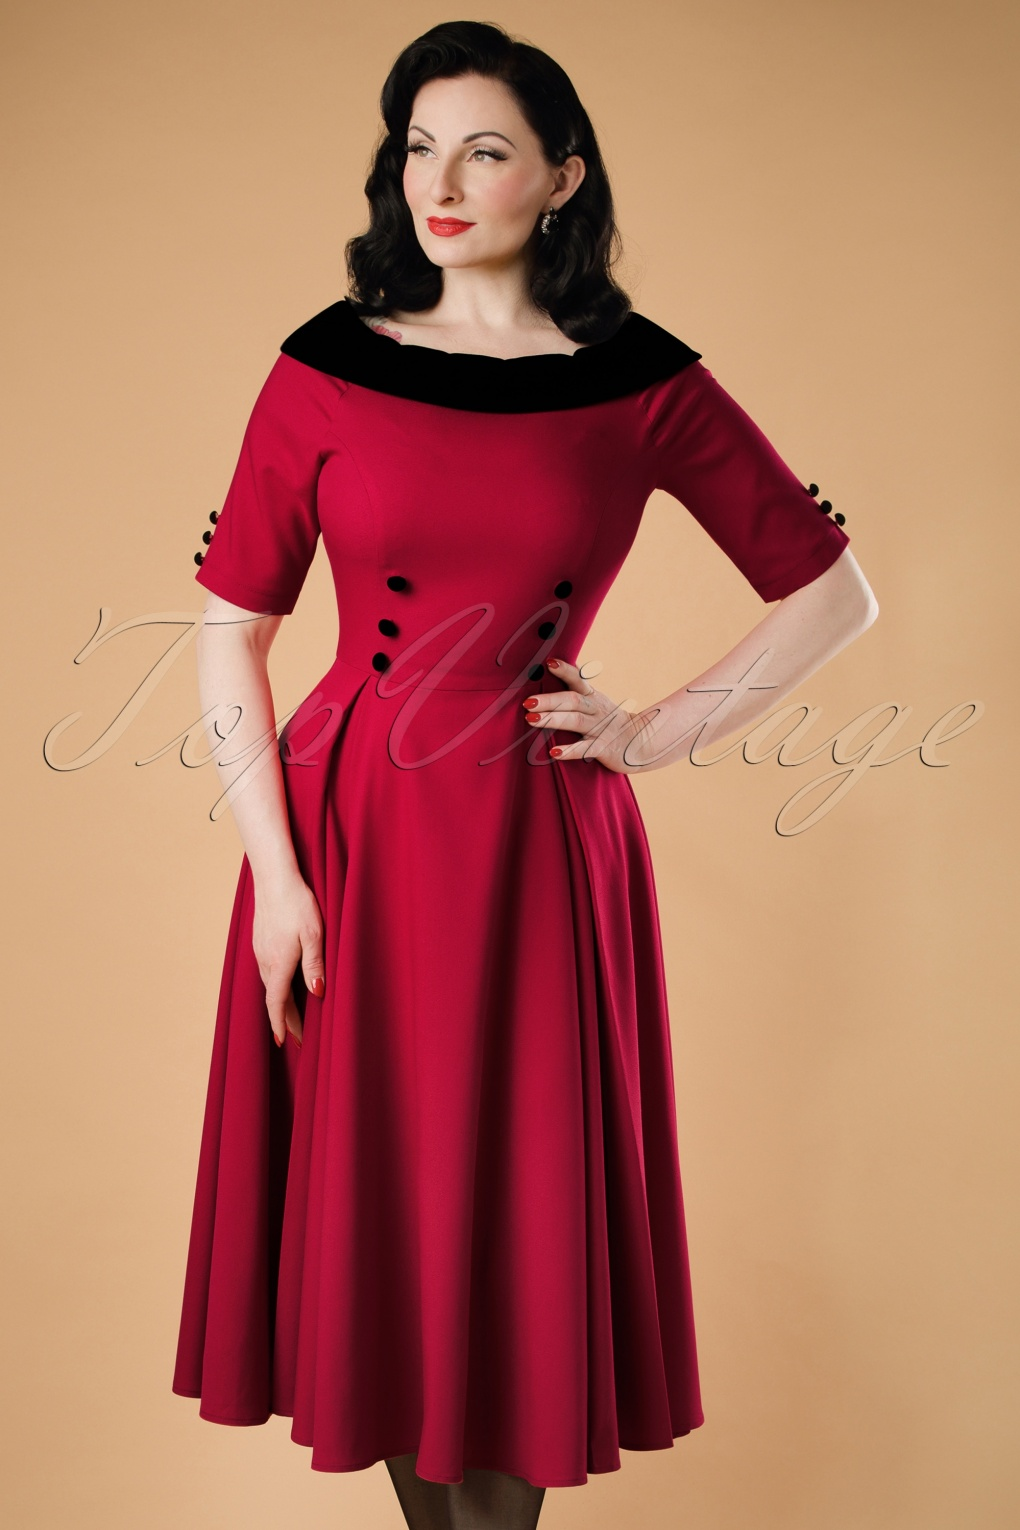 Retro Revolution Where To Find Vintage Clothing In: 50s Carrera Swing Dress In Red